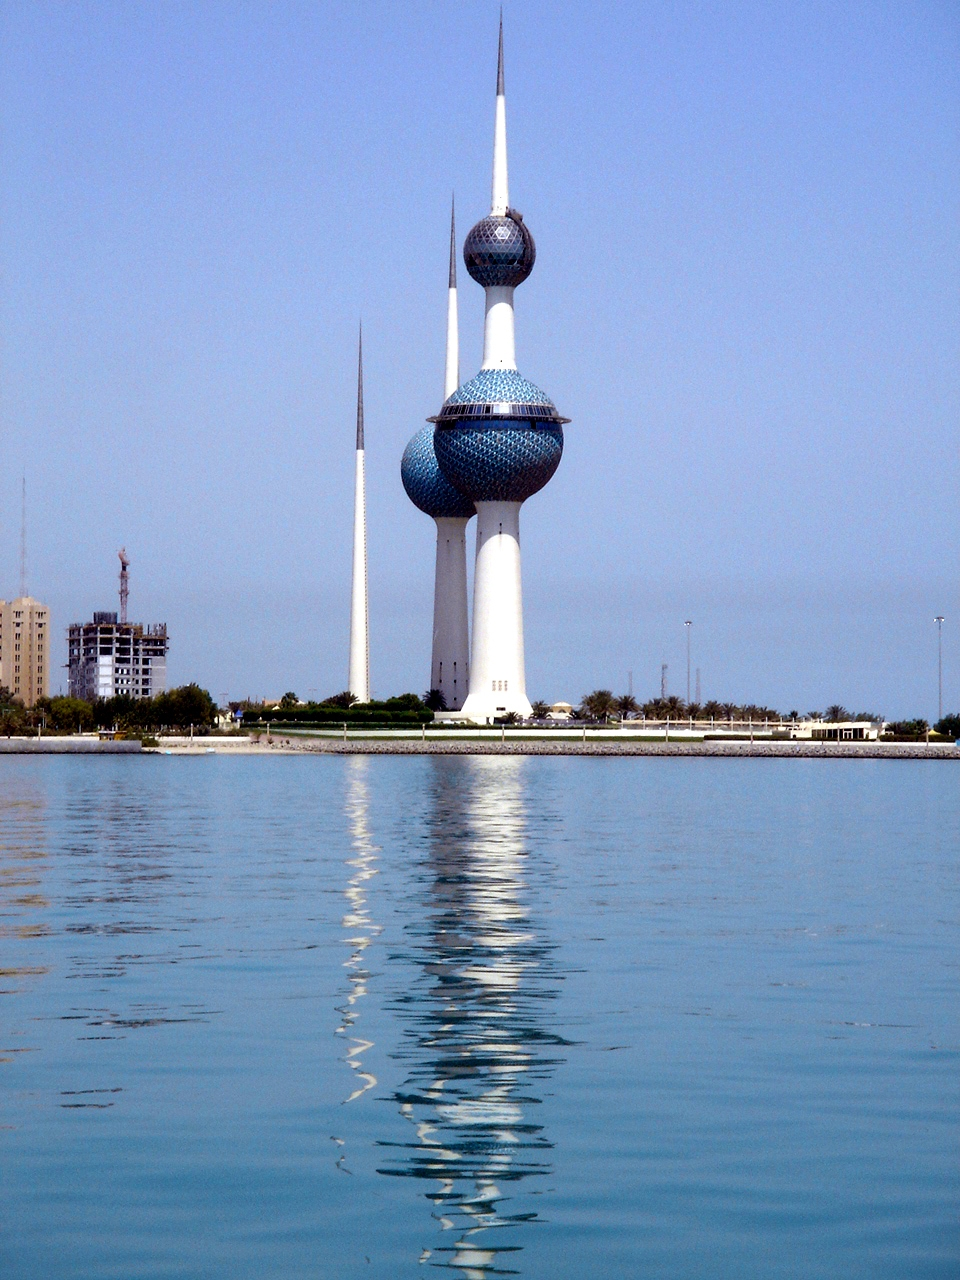 Kuwait Towers: sort of like two intercontinental ballistic missiles suffering from tonsillitis (Picture by http://en.wikipedia.org/wiki/User:Deepak_gupta [CC BY-SA 2.5 (http://creativecommons.org/licenses/by-sa/2.5)], via Wikimedia Commons)